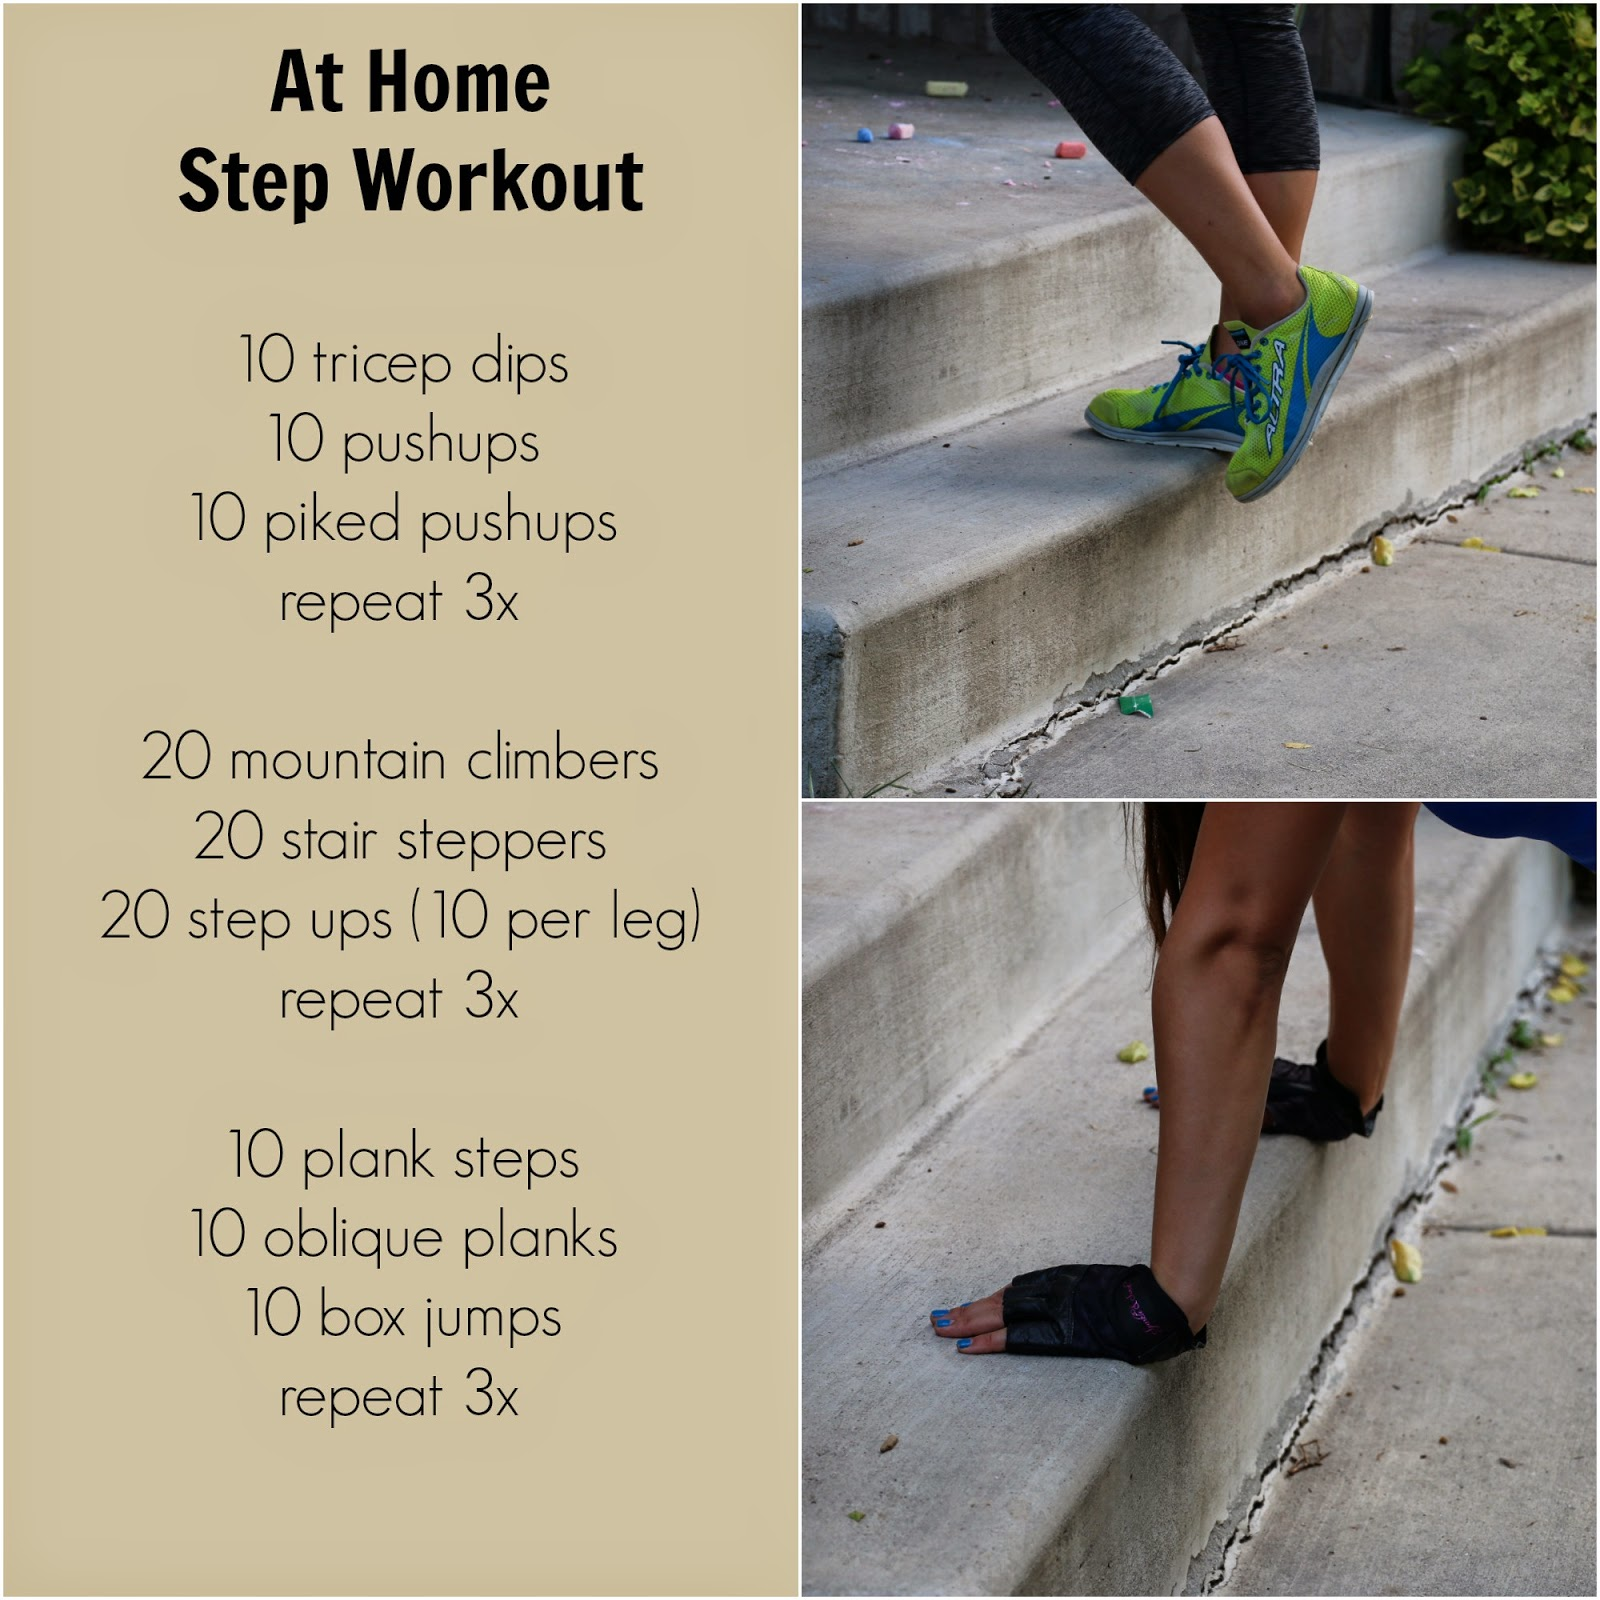 http://flipoutfam.blogspot.com/2014/07/step-workout.html